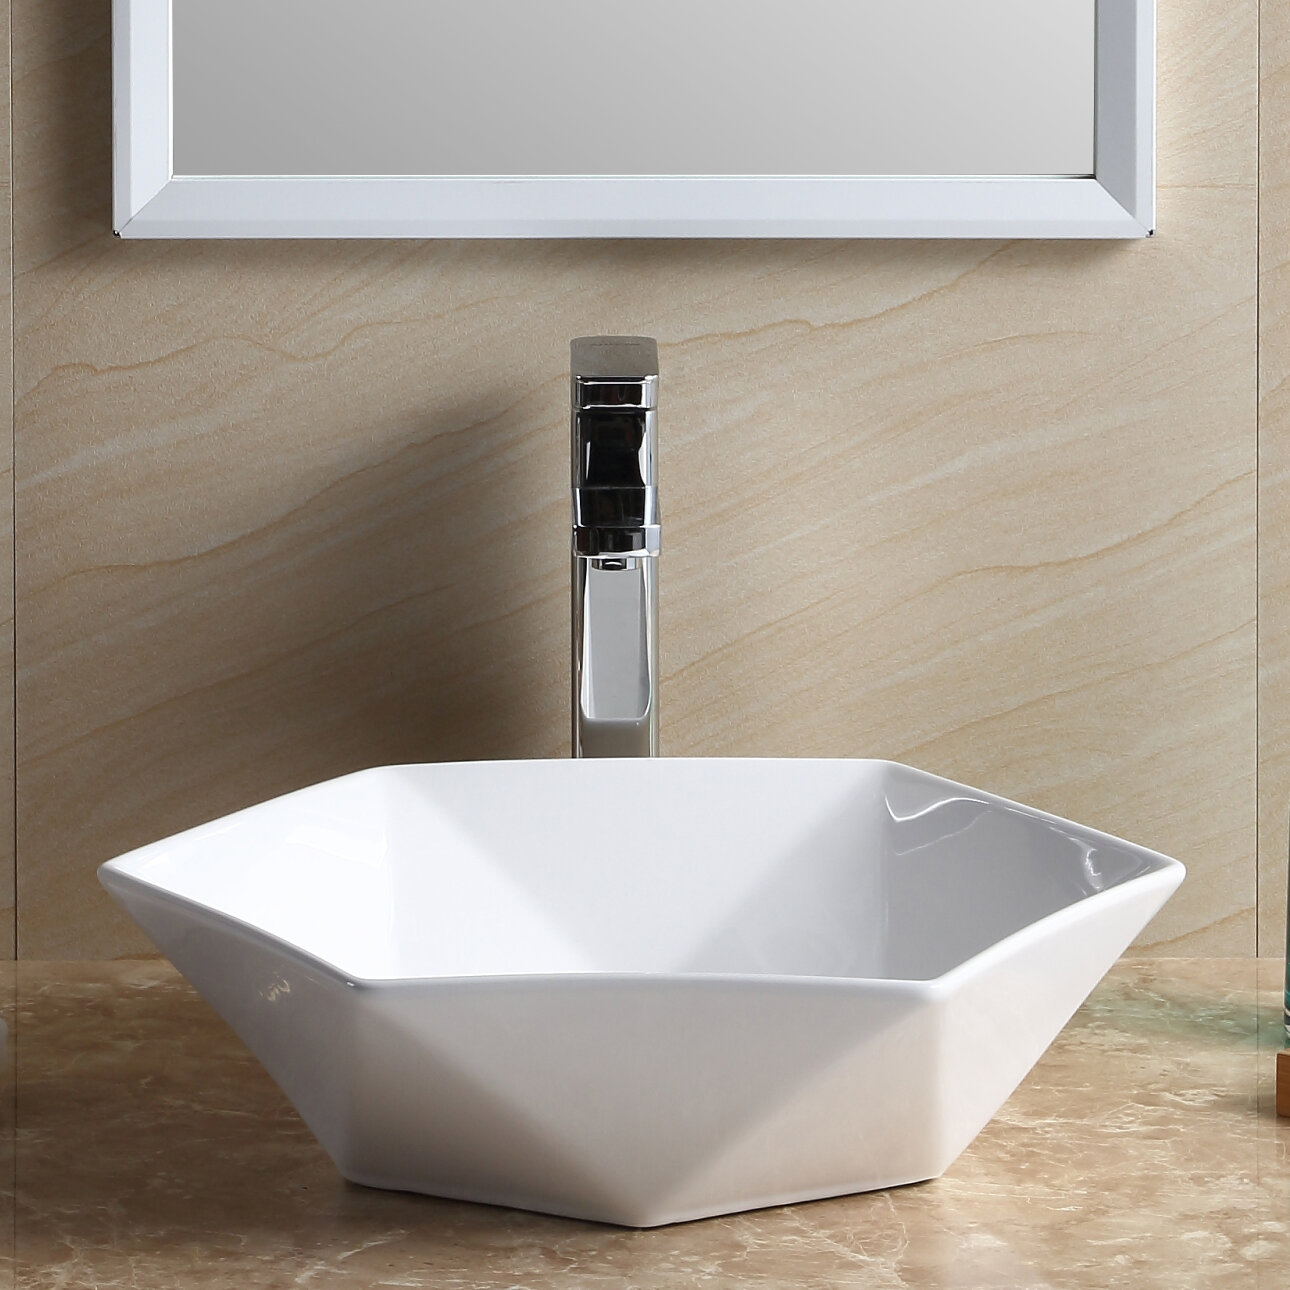 Fine Fixtures Modern Vitreous China Specialty Vessel Bathroom Sink ...